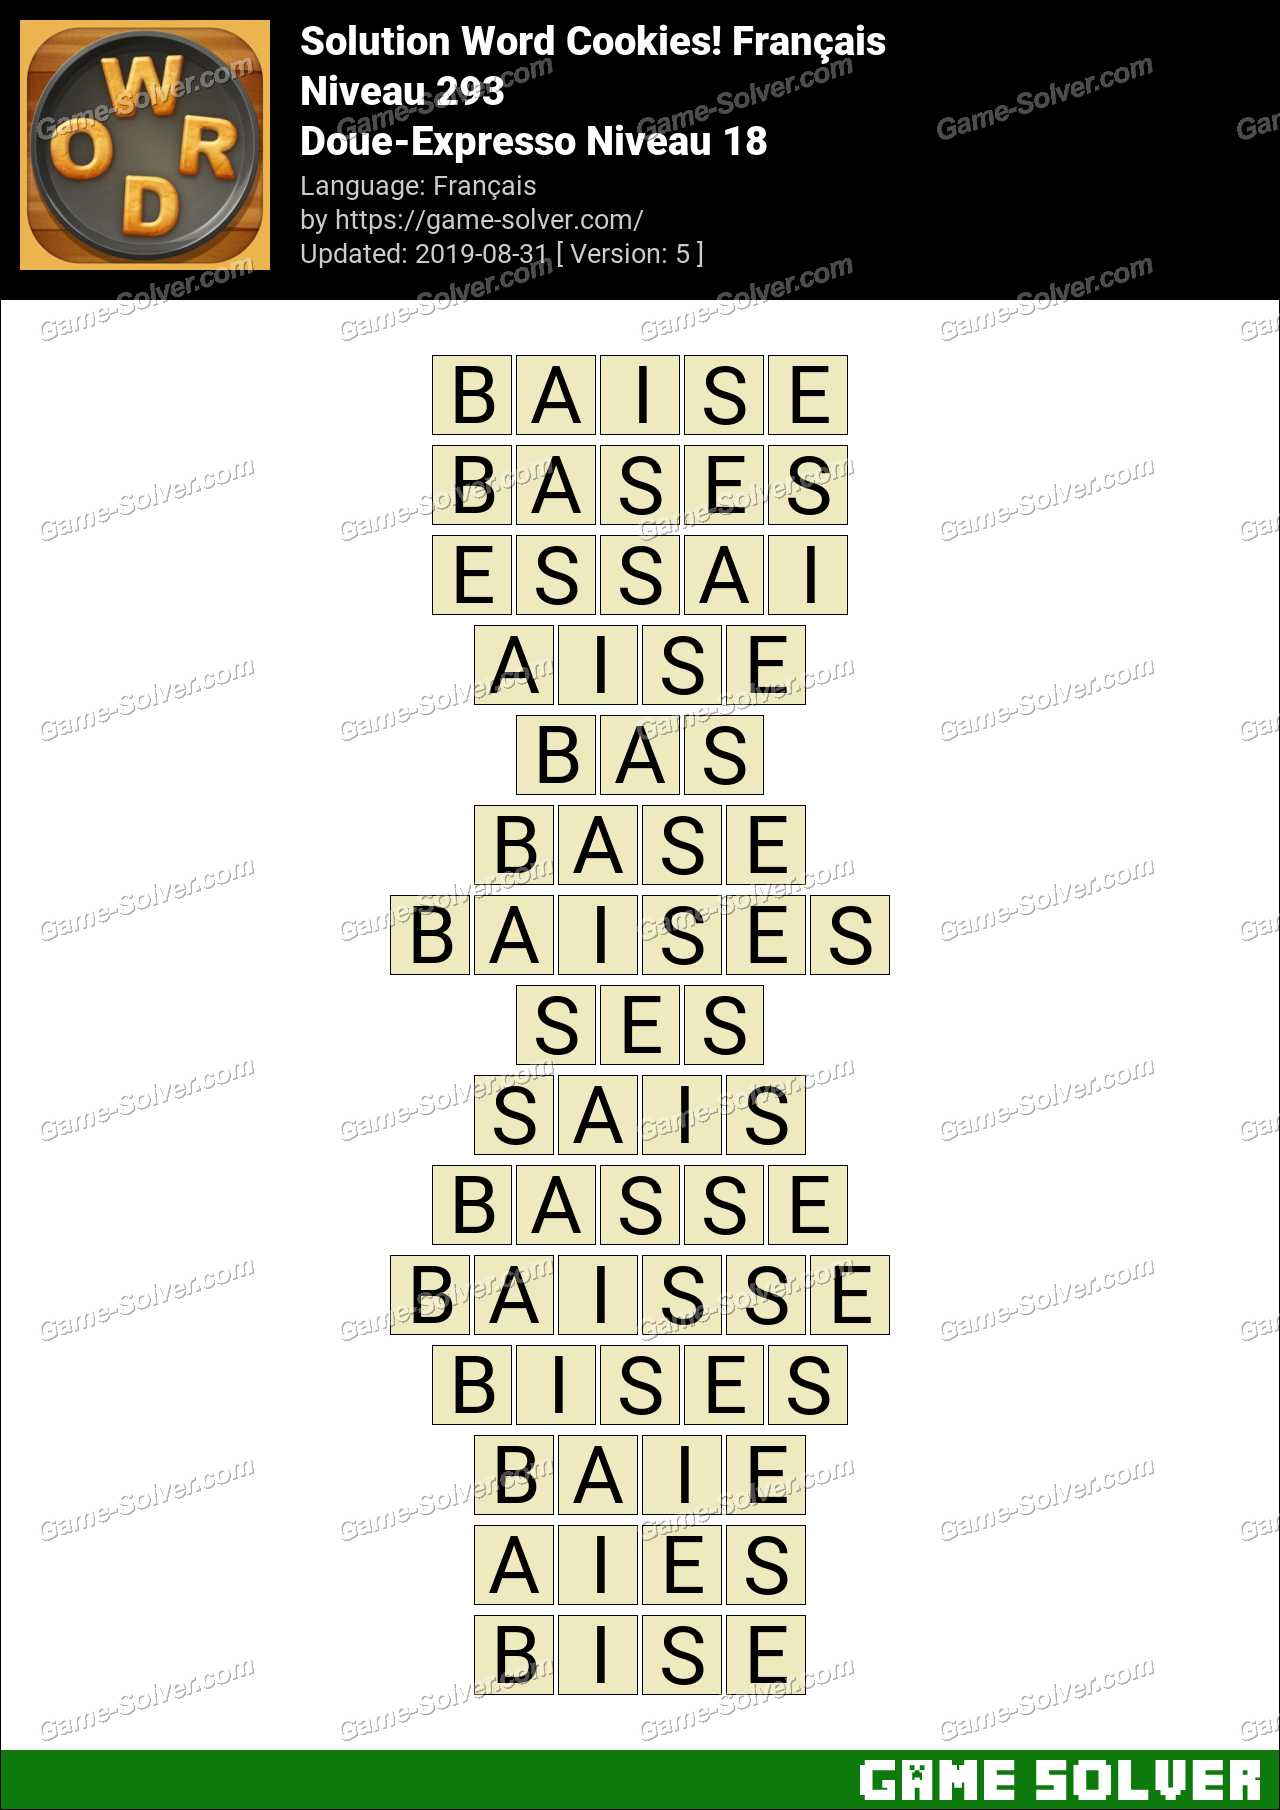 Solution Word Cookies Doue-Expresso Niveau 18